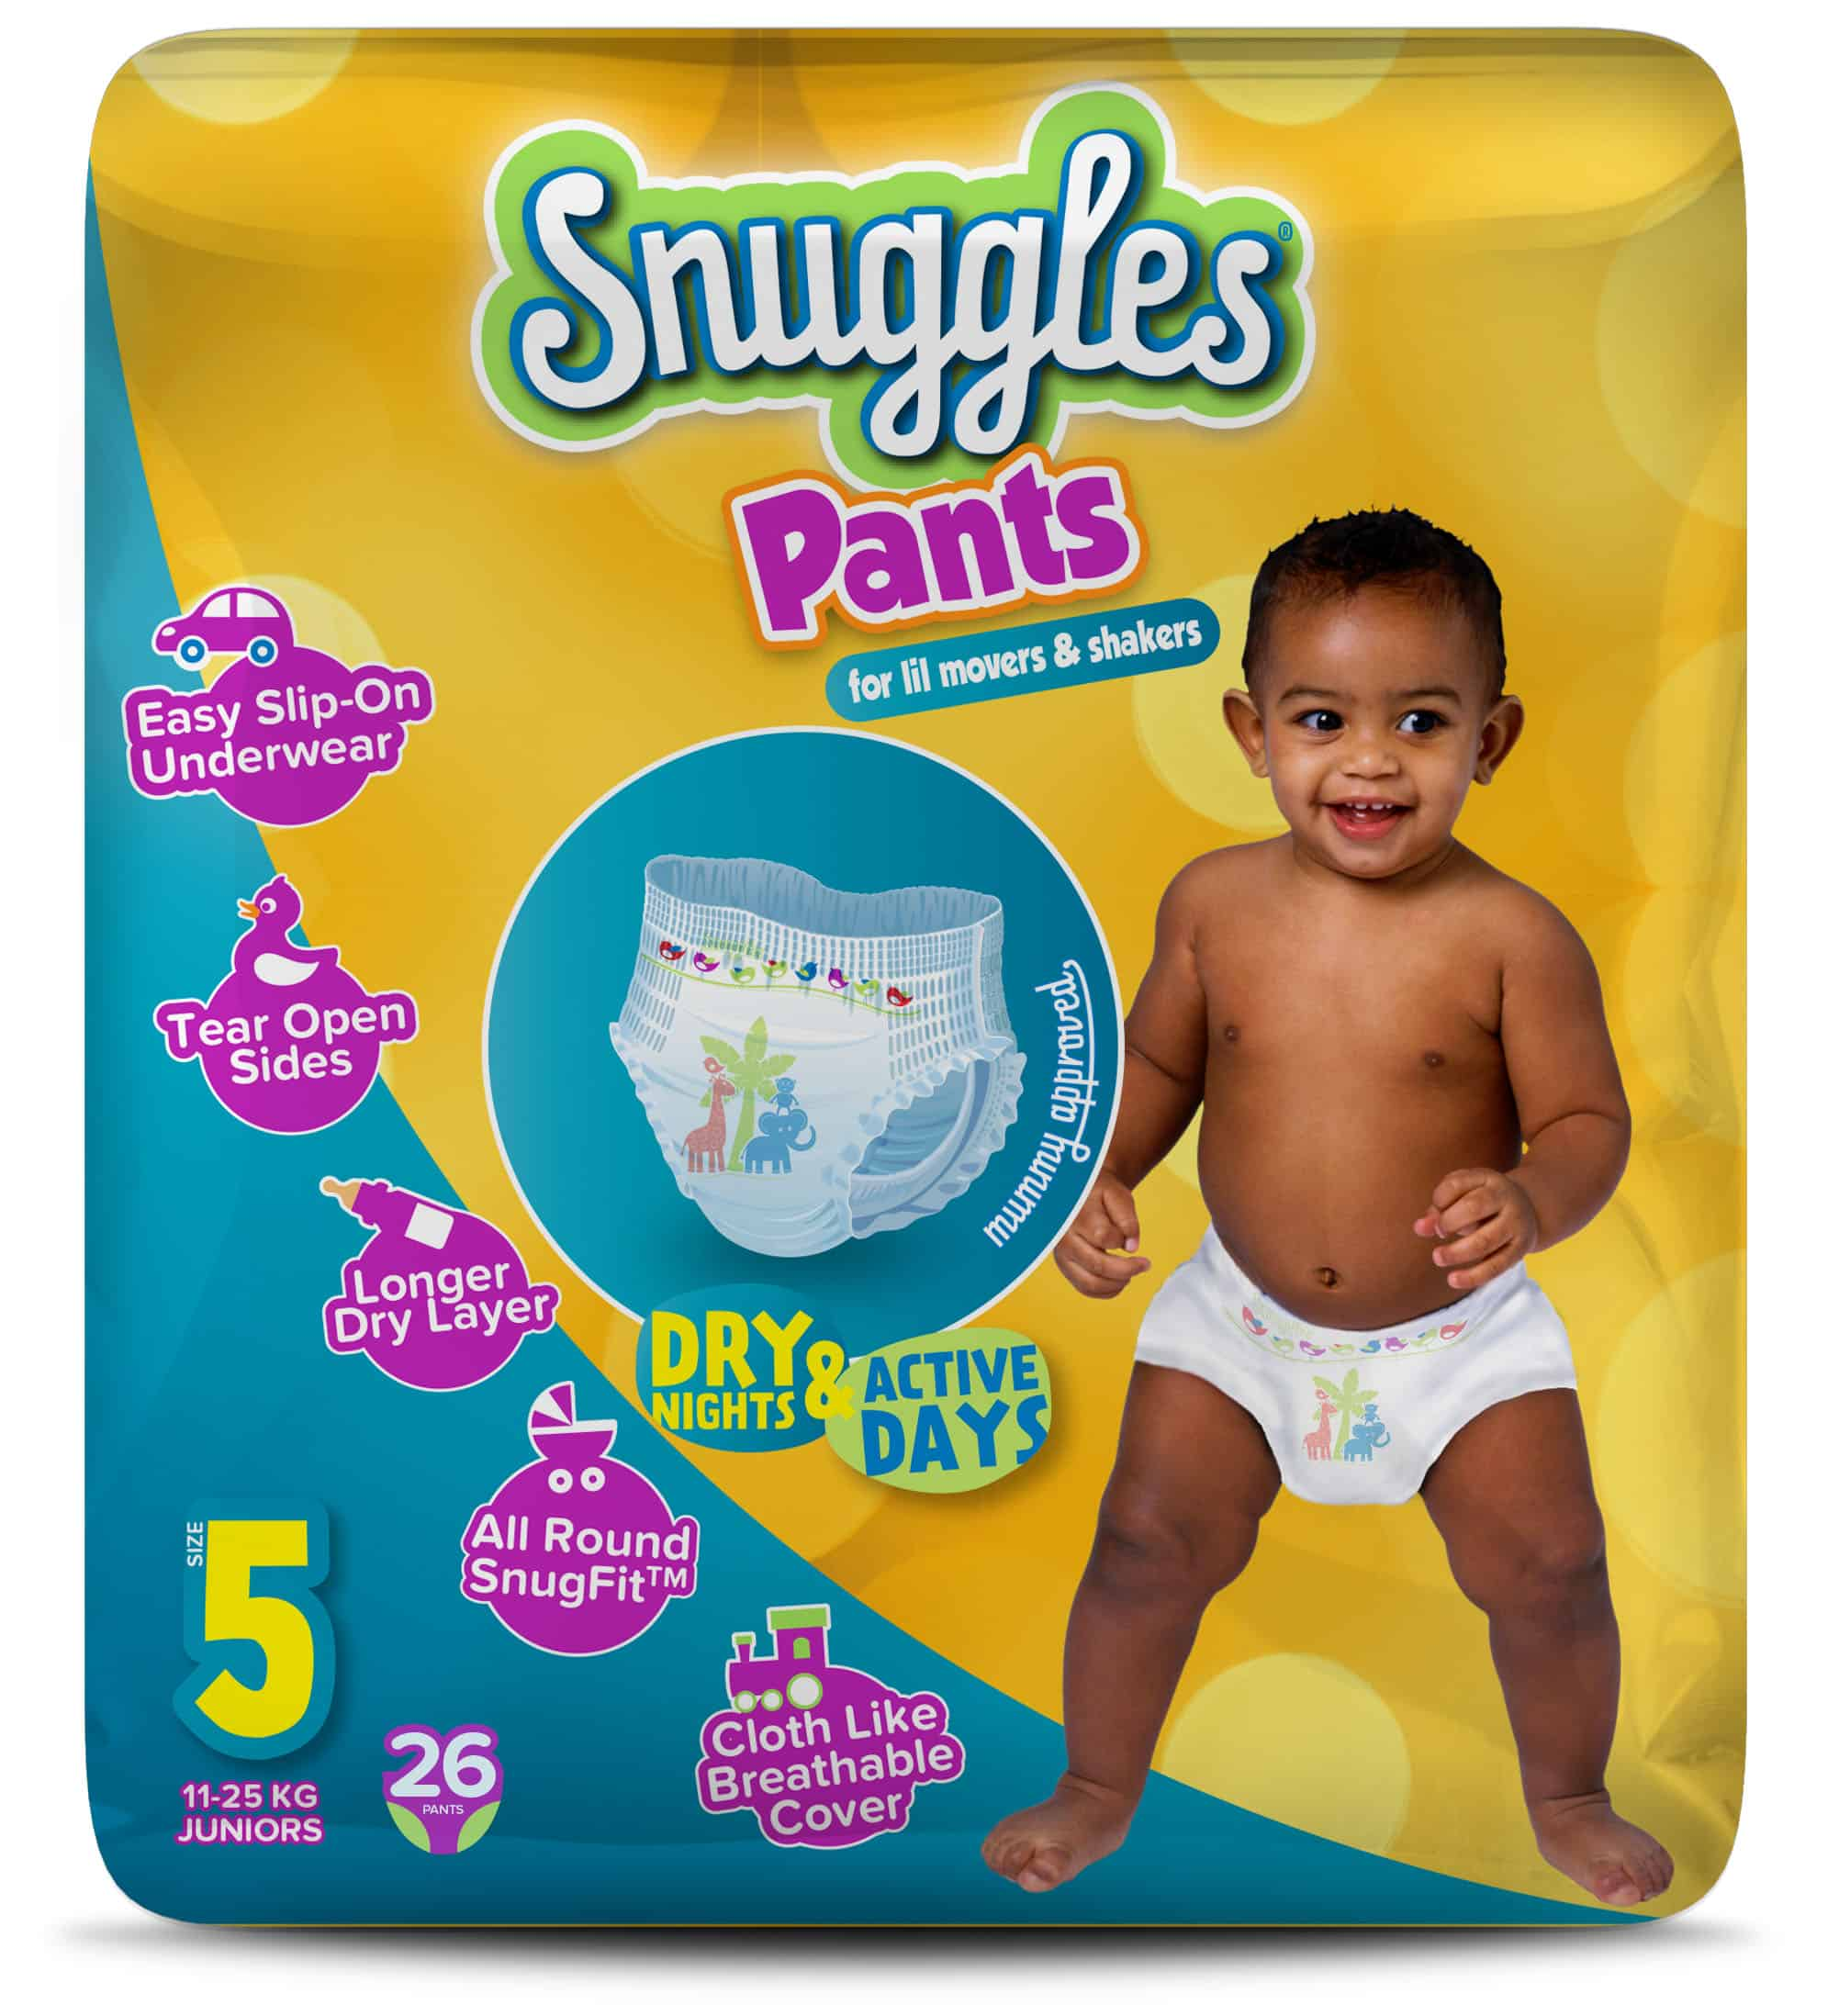 Snuggles baby pull ups